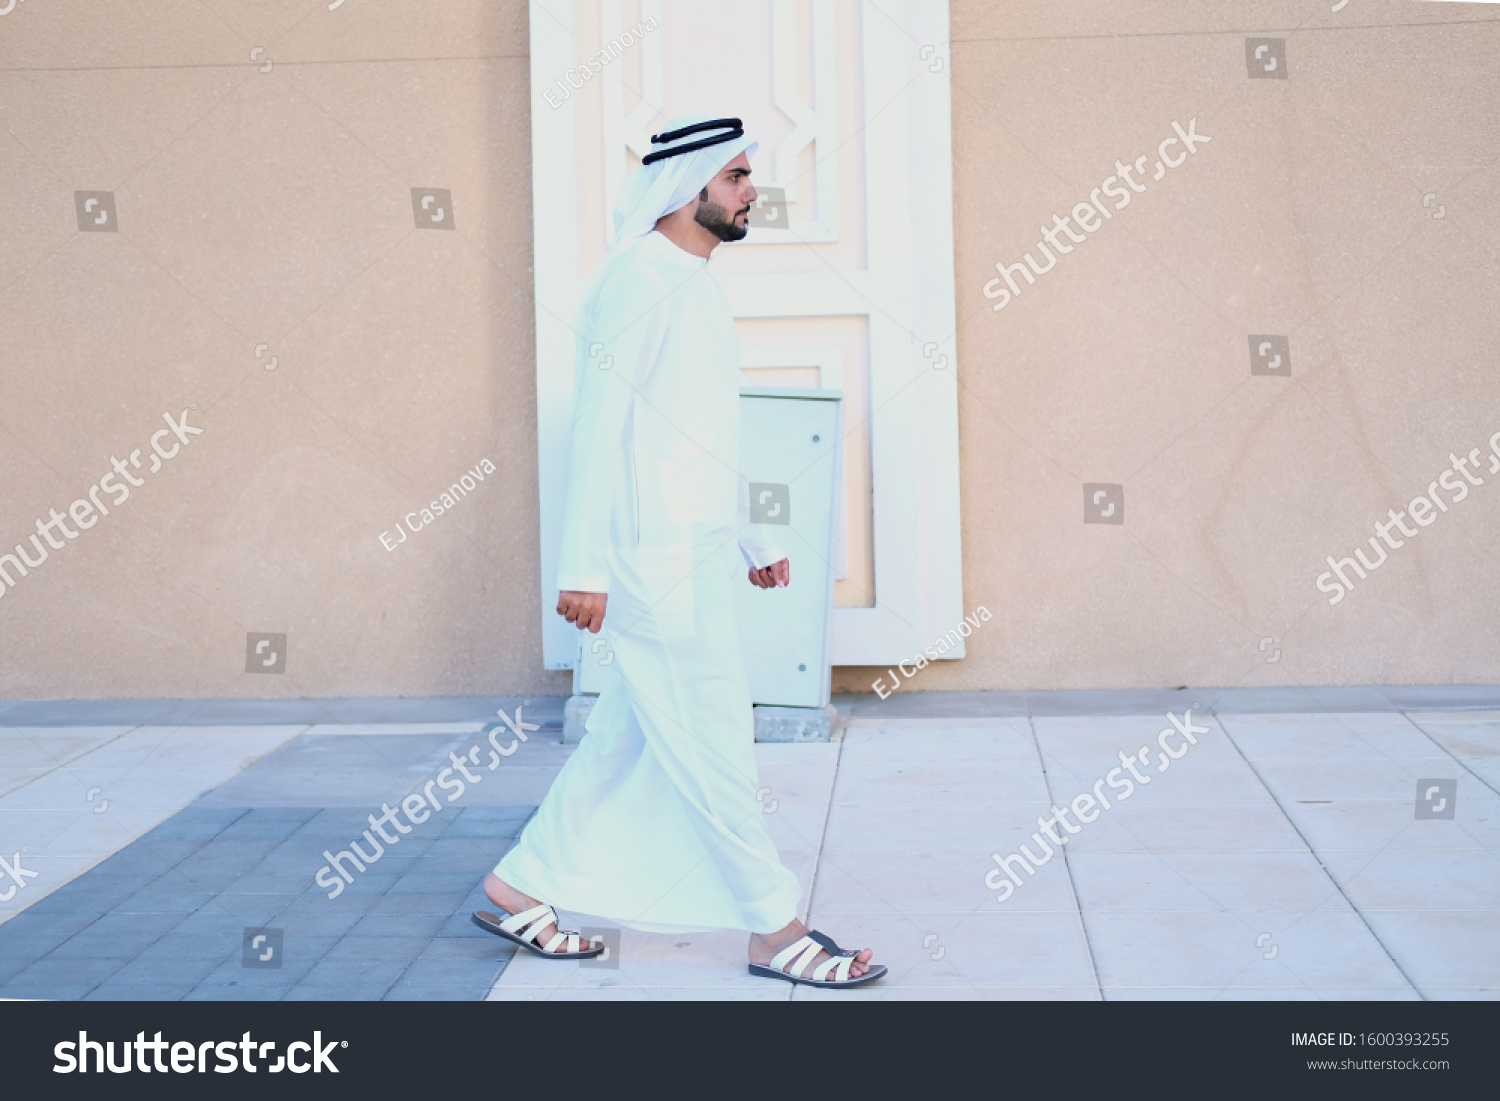 Full body portrait of Arab man walking on streets wearing Ghutra kandura. Emirati Arabic UAE National on dish dash. Side view of Arabian guy as he walks forward #1600393255